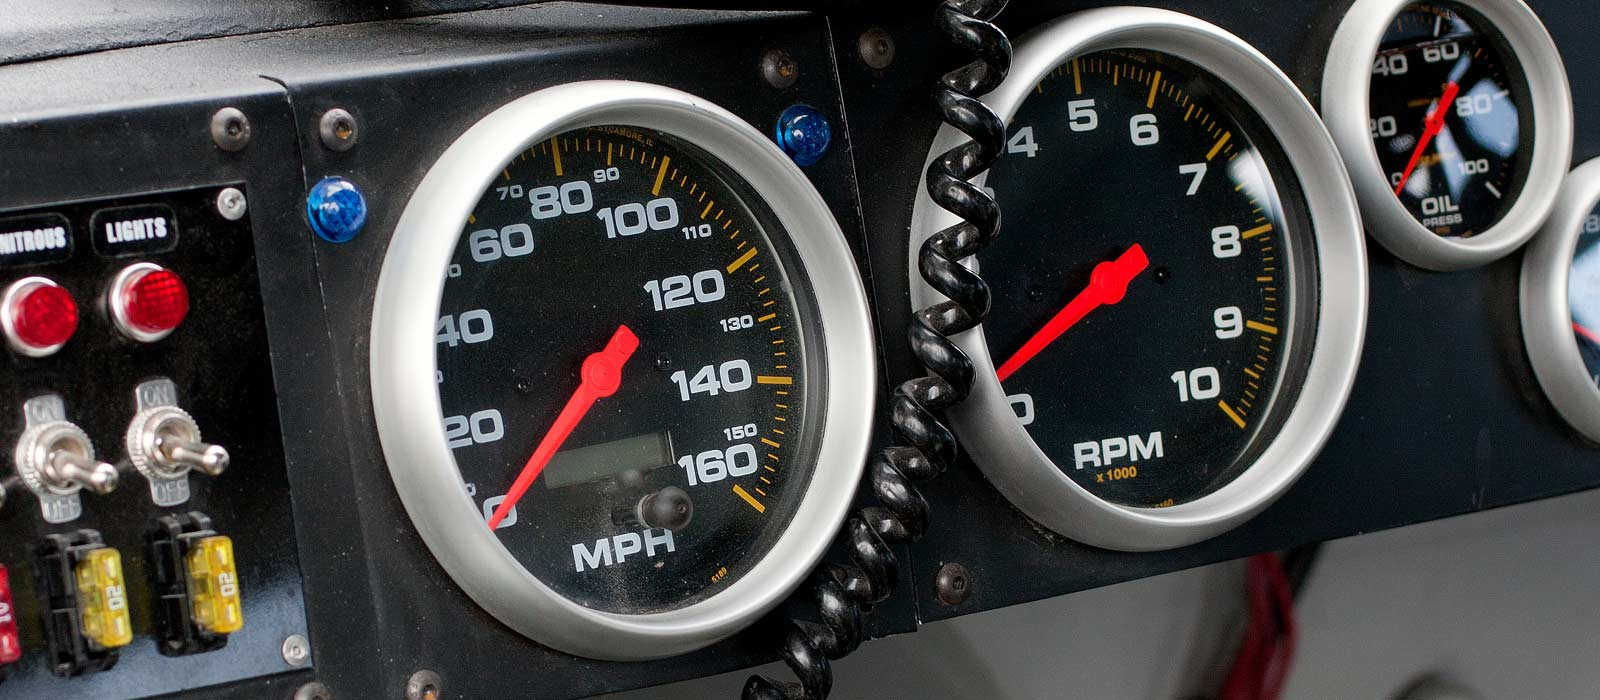 Driver's view of gauges and switches from inside racecar at racetrack near campus